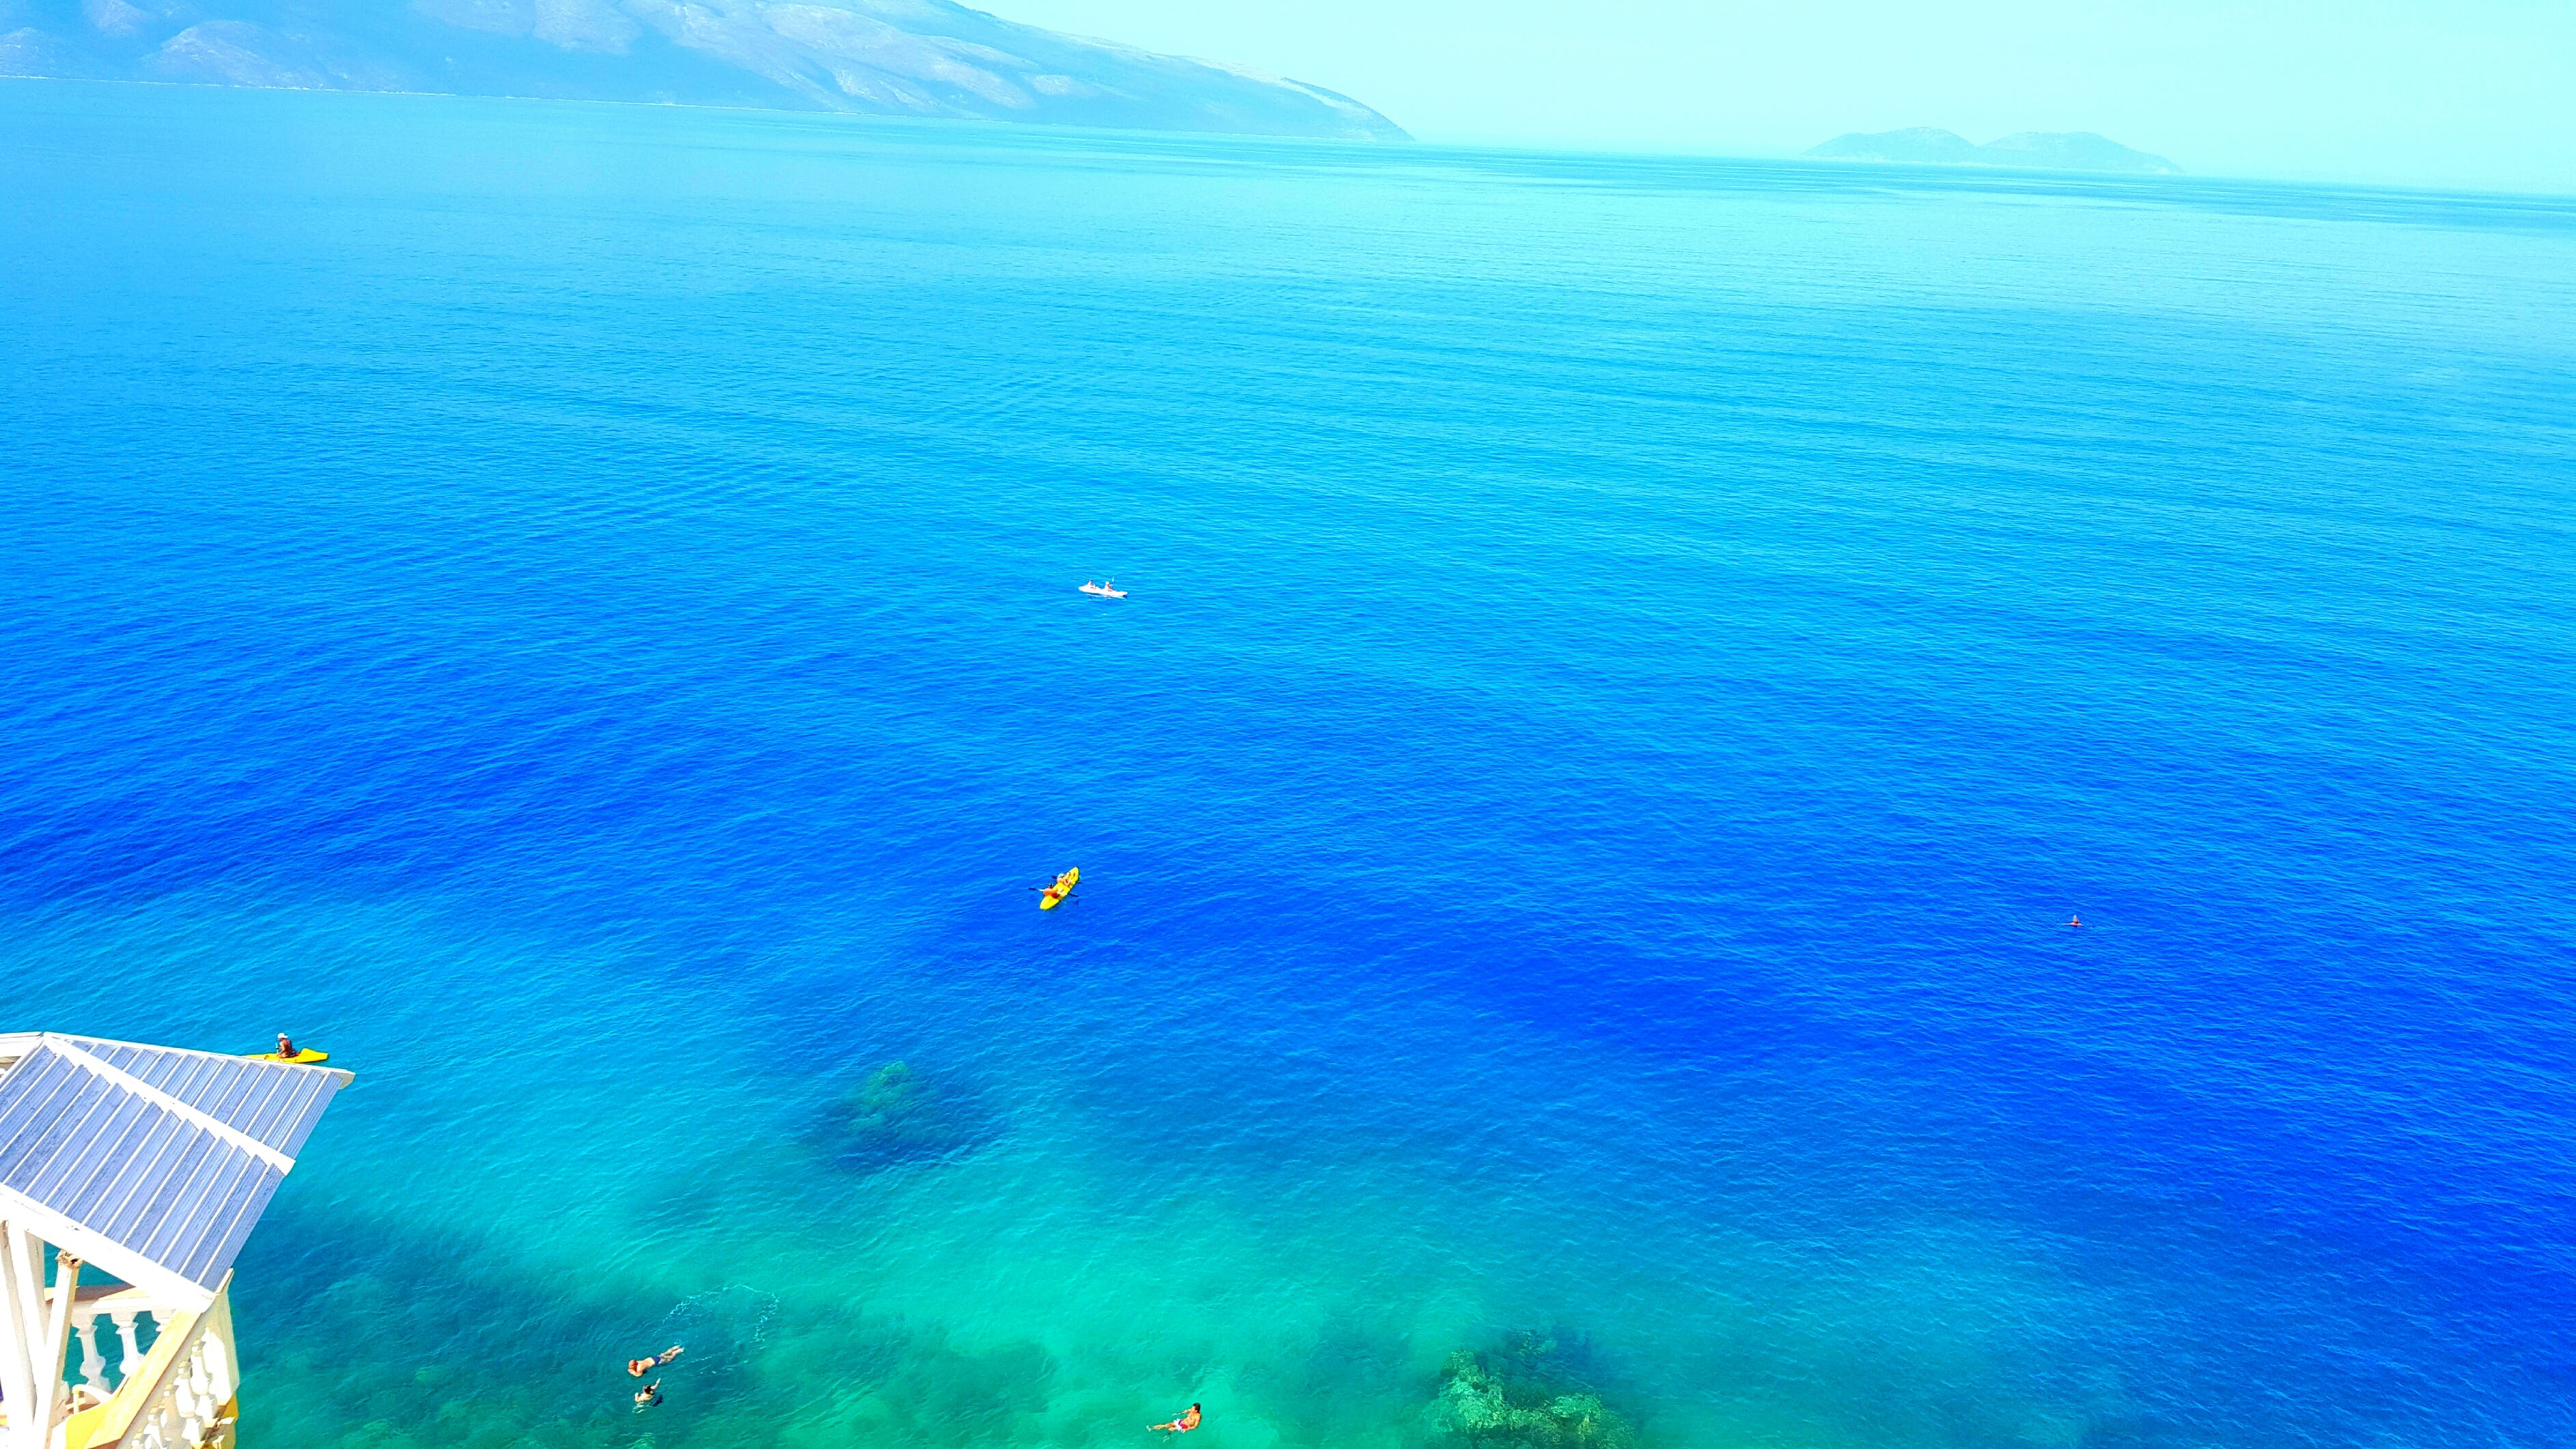 Blue Body of Water